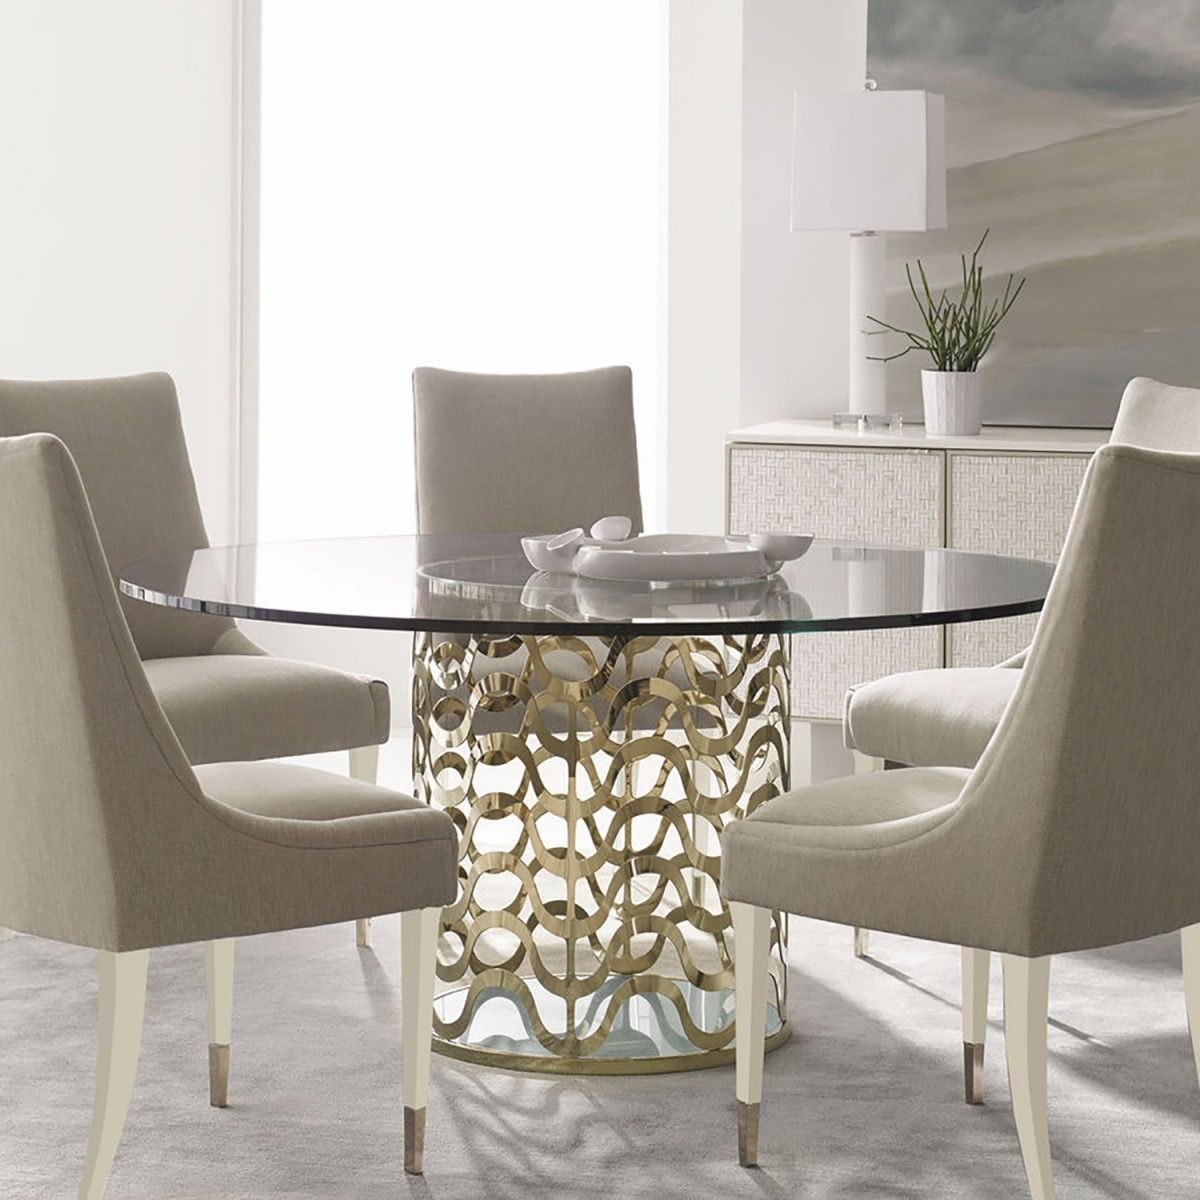 Caracole Ride The Waves Dining Table Candelabra Inc Contemporary Round Dining Room Round Dining Room Glass Round Dining Table #round #glass #table #for #living #room